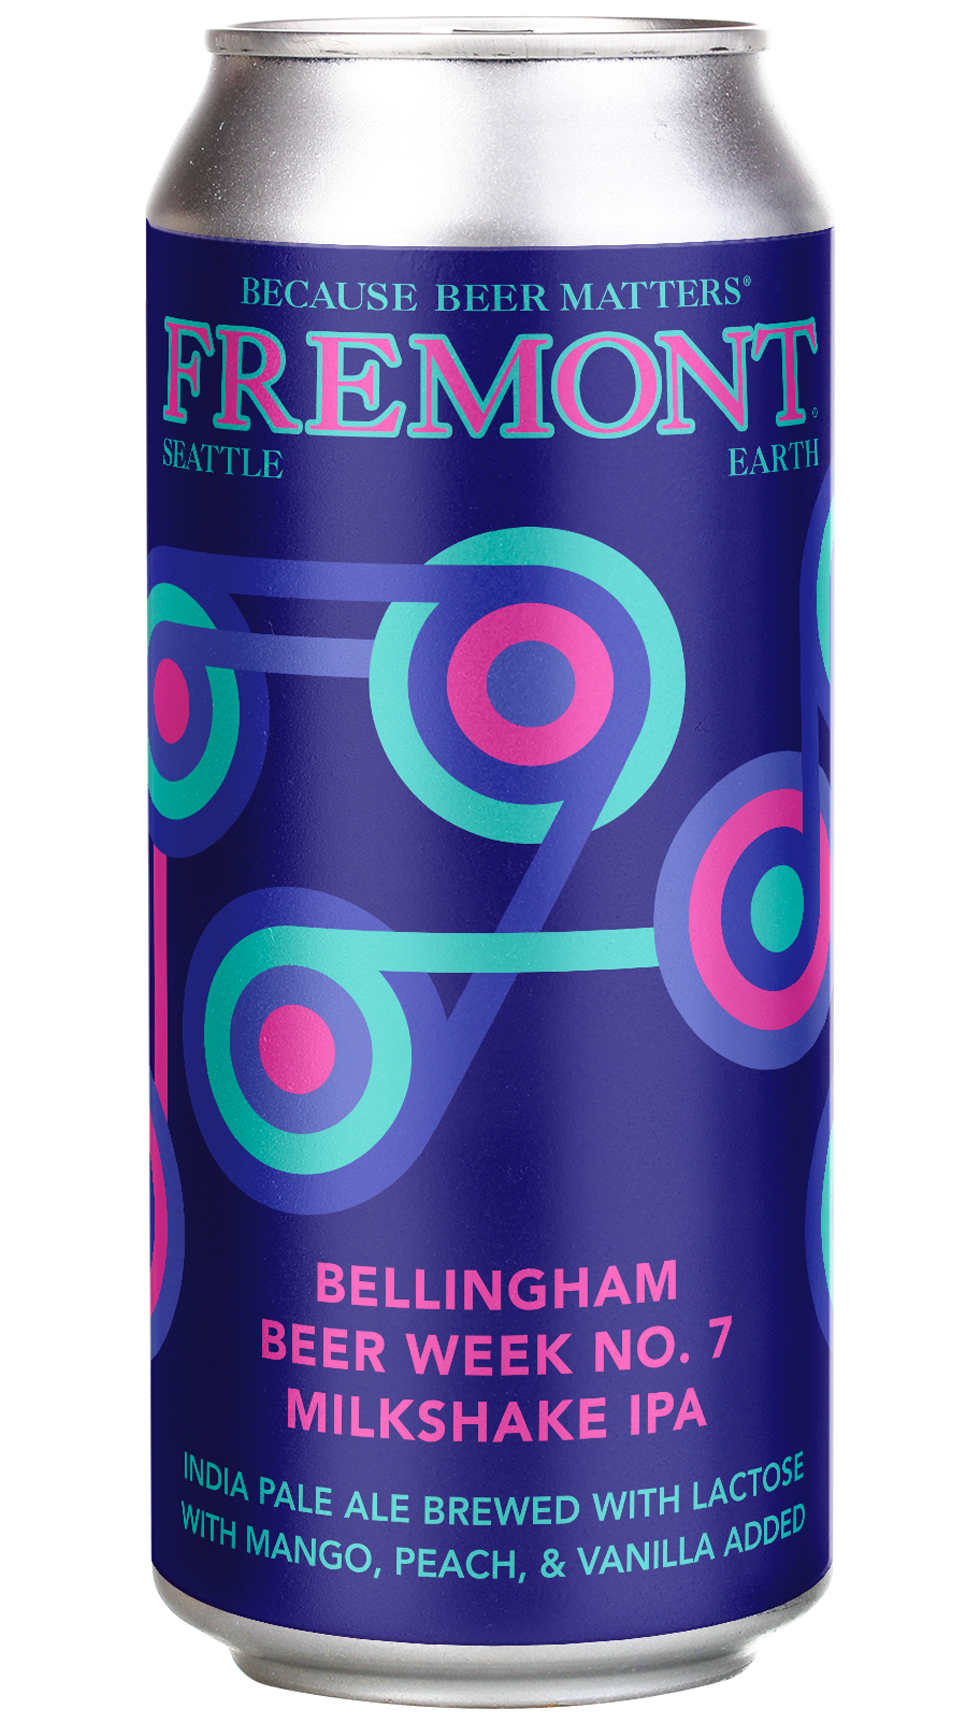 Fremont-Bellingham-Beer-Week-No-7-12oz-can.png